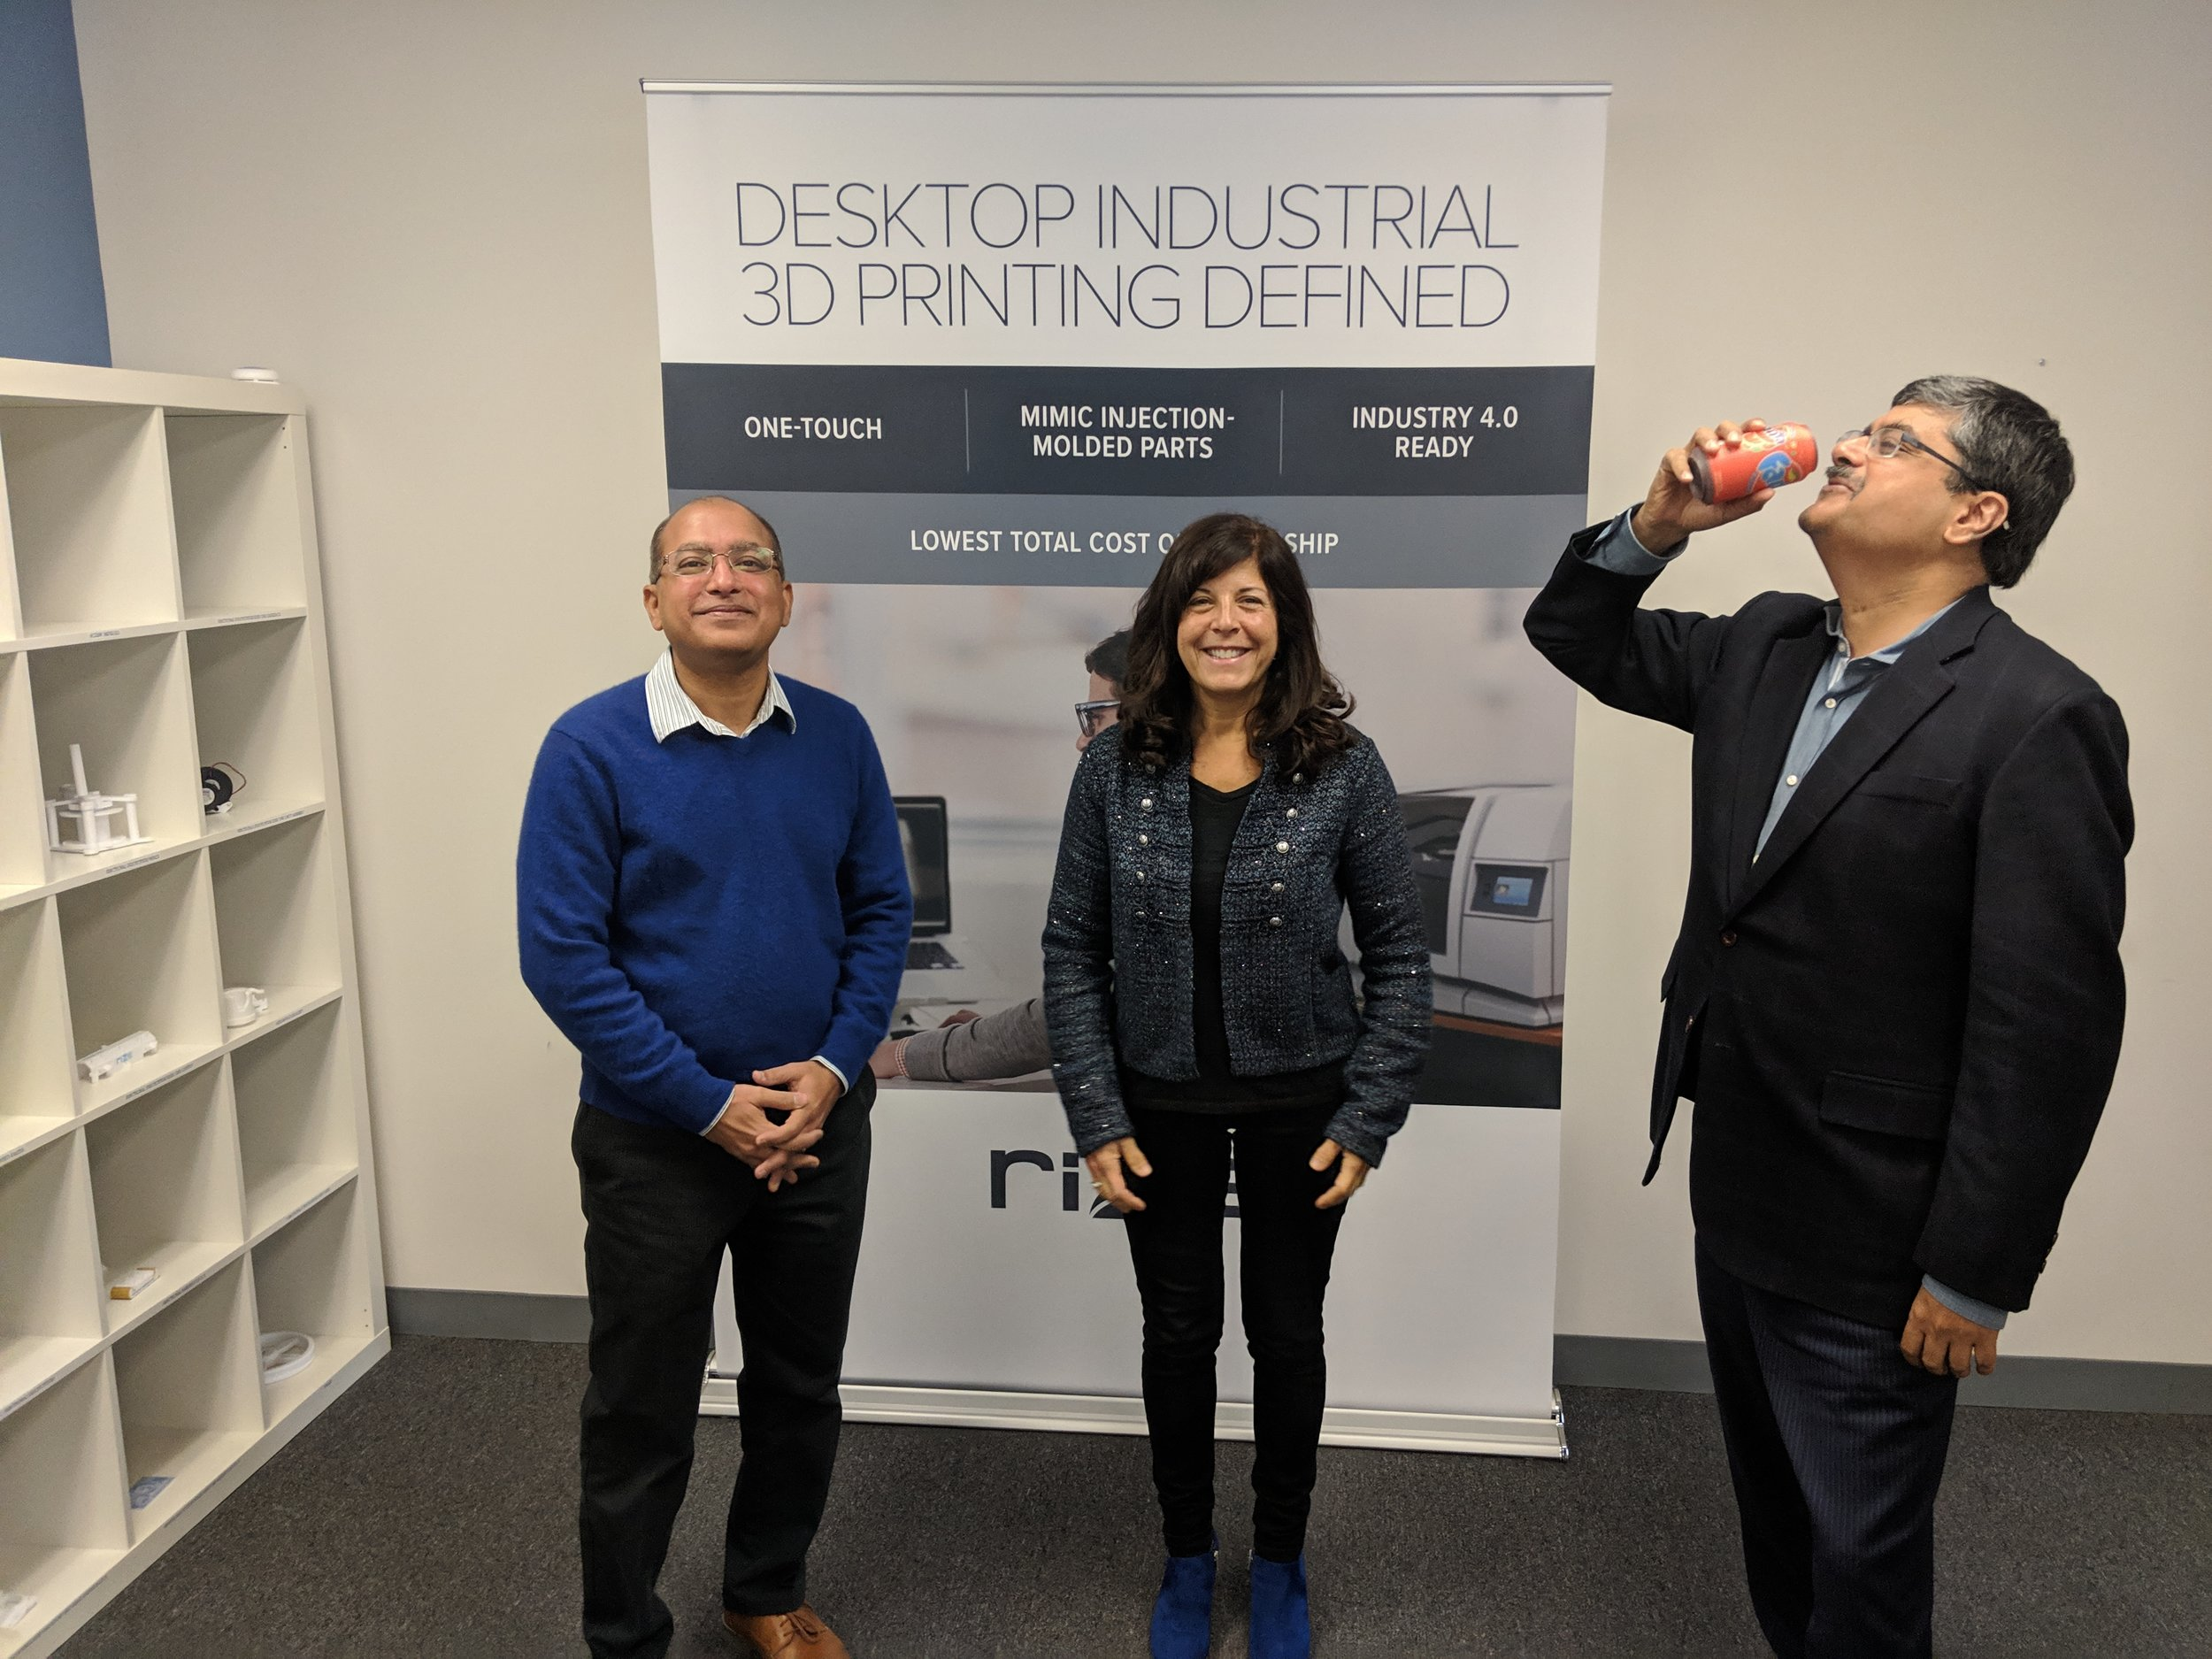 L-R: Kishore, Julie, and Andy at Rize HQ [Image: Fabbaloo]